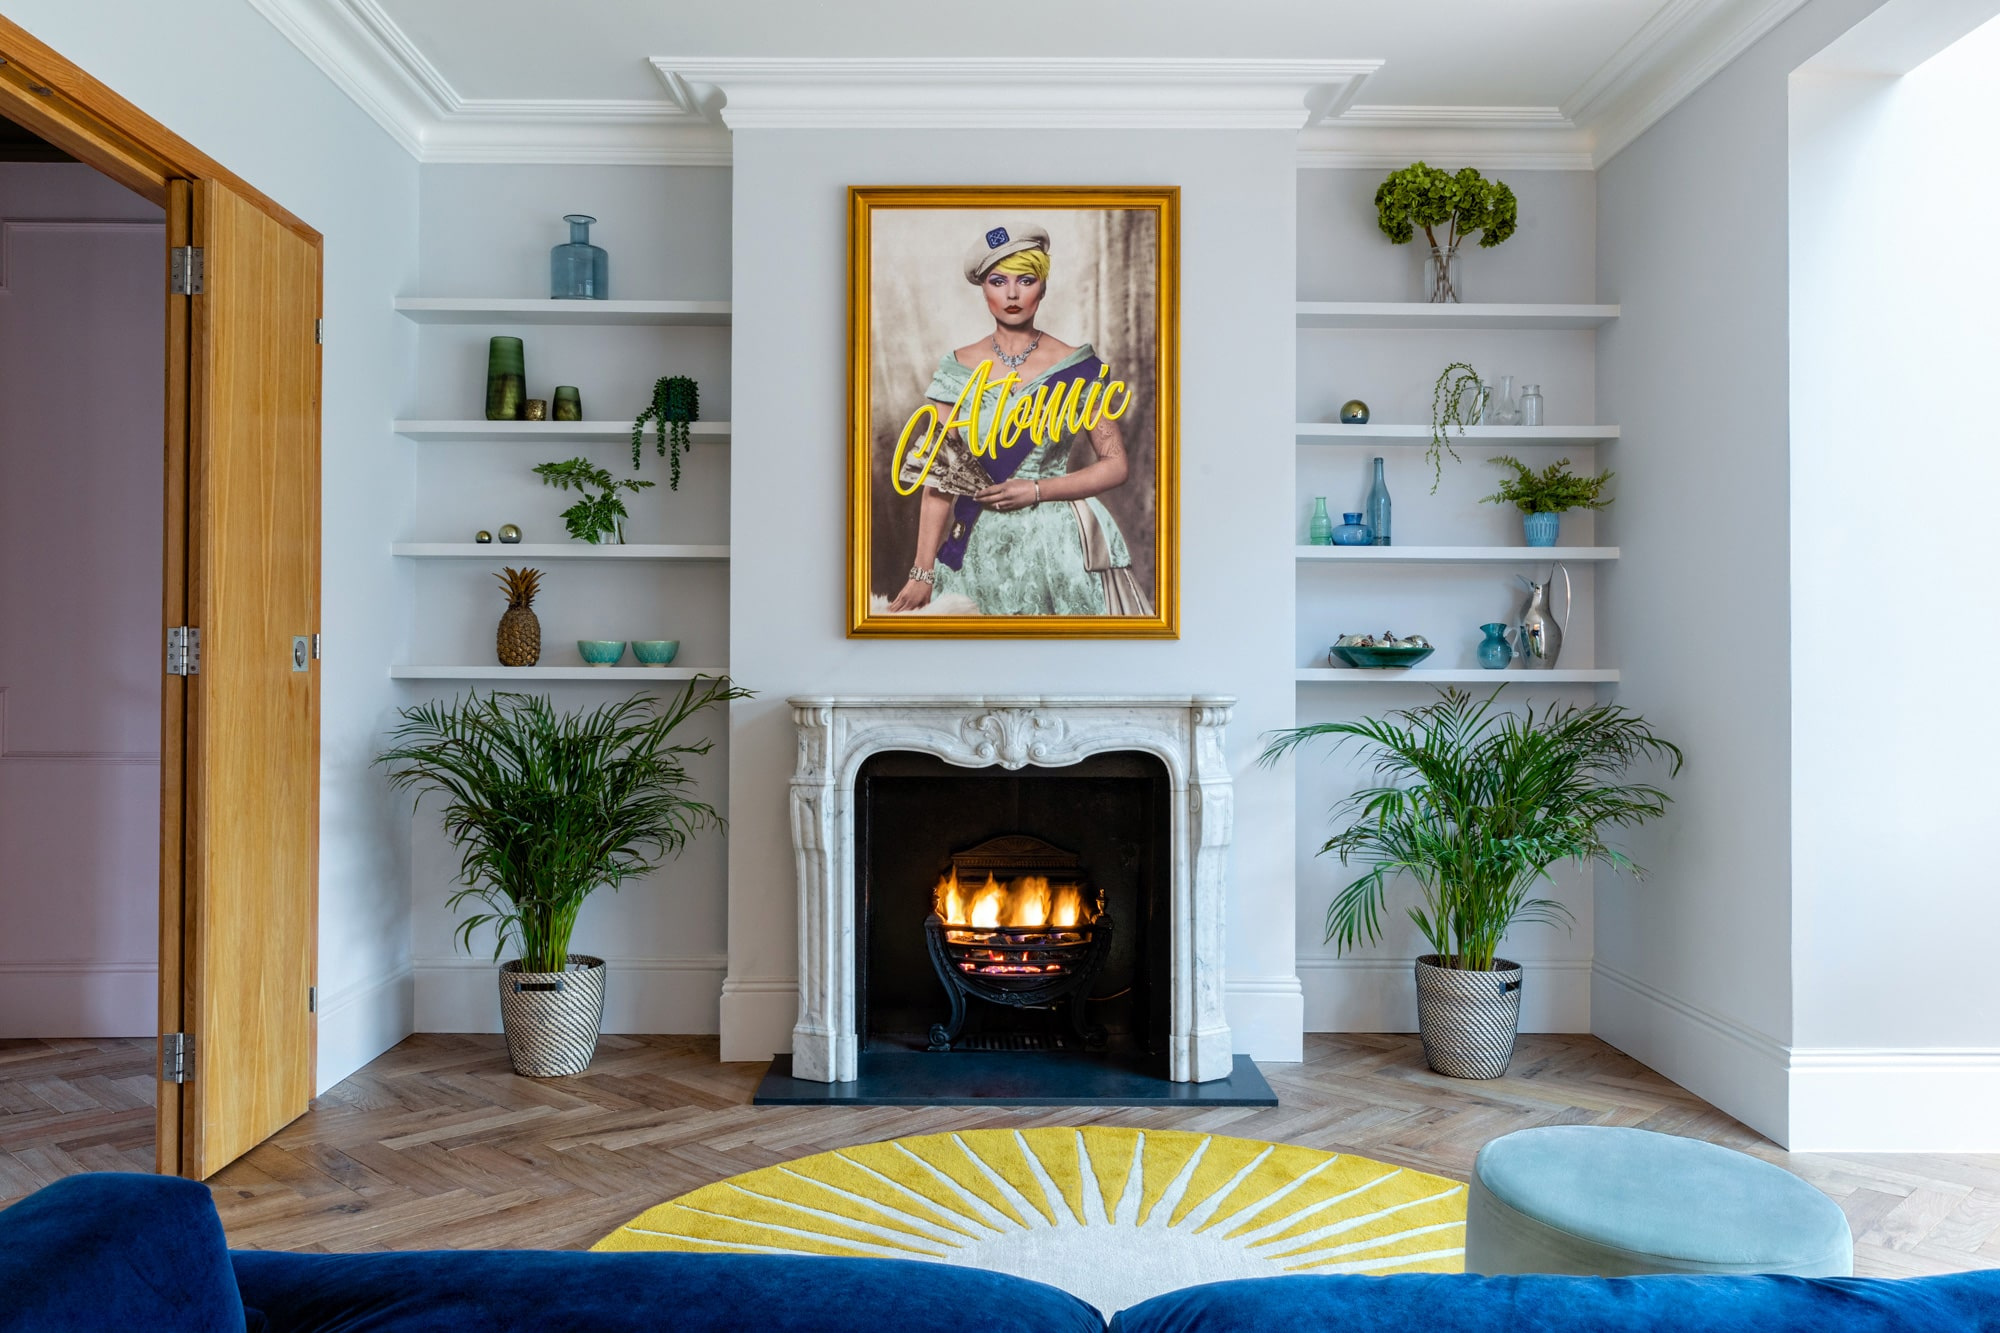 interior photo: sitting room with light blue walls; picture above a fire place with Debbie Harry with a sign